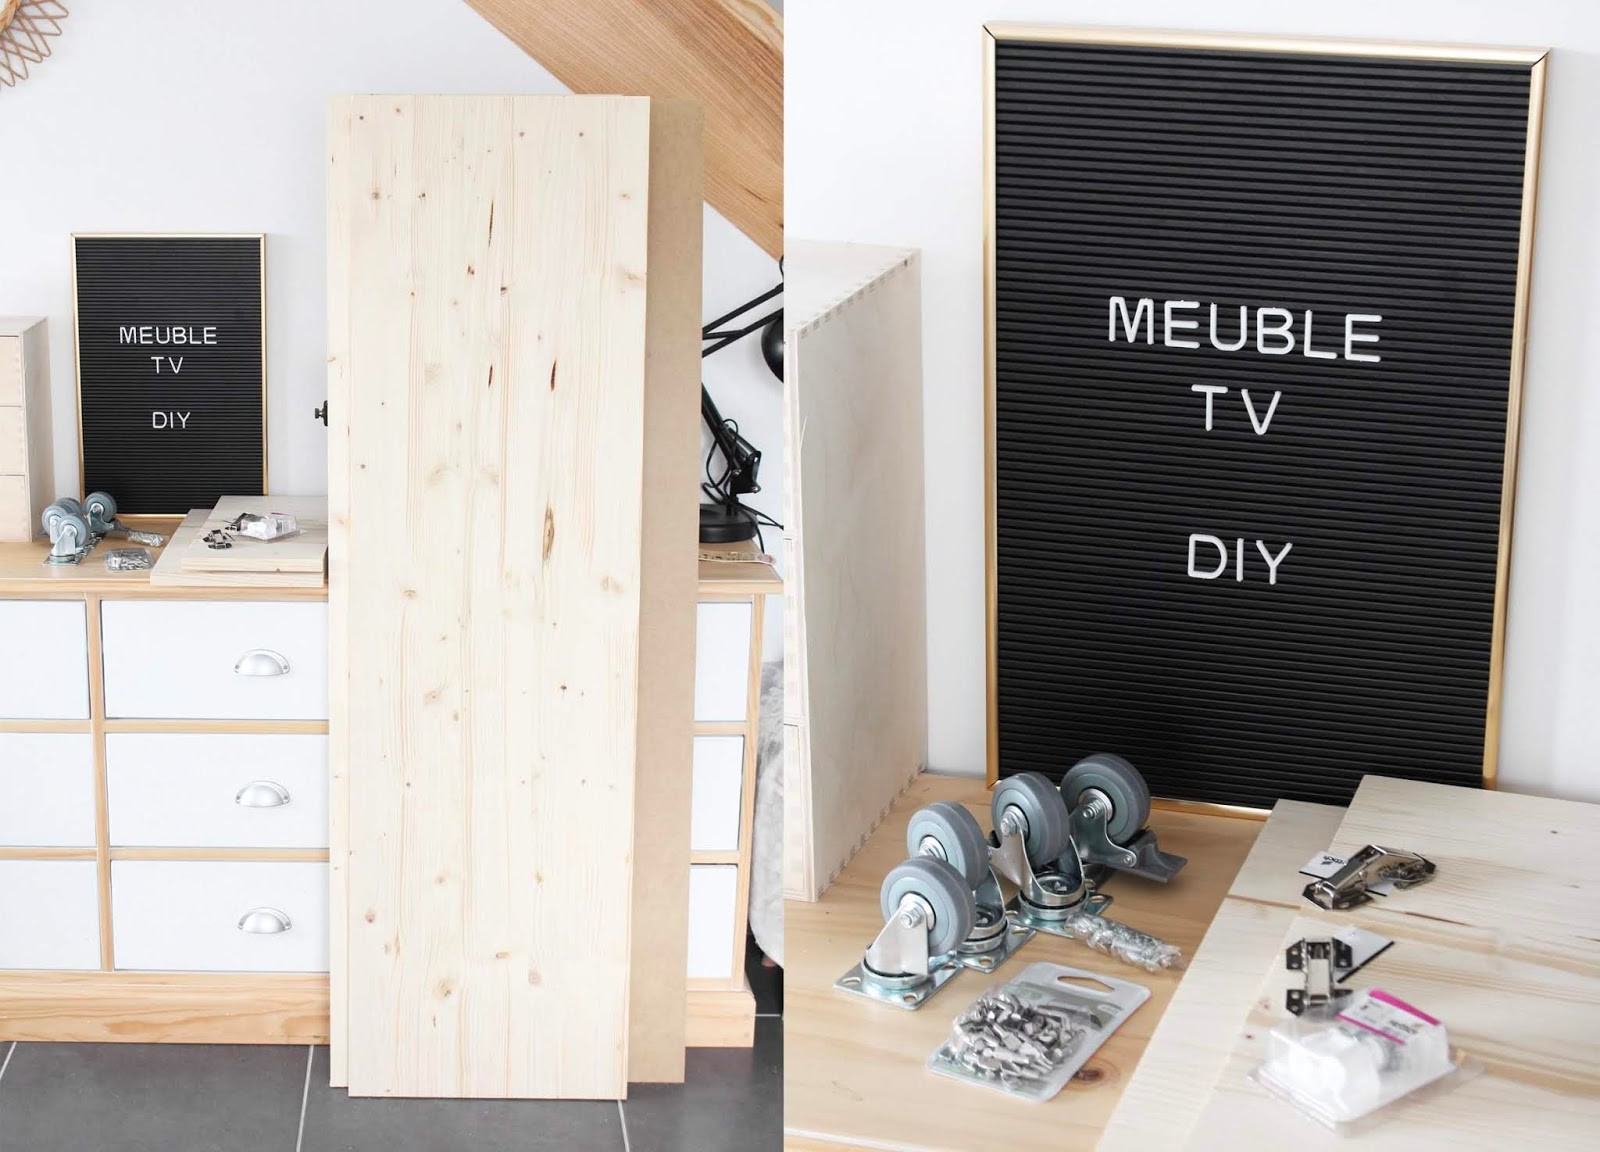 Diy Meuble Tv Leroy Merlin Lola Etcétéra